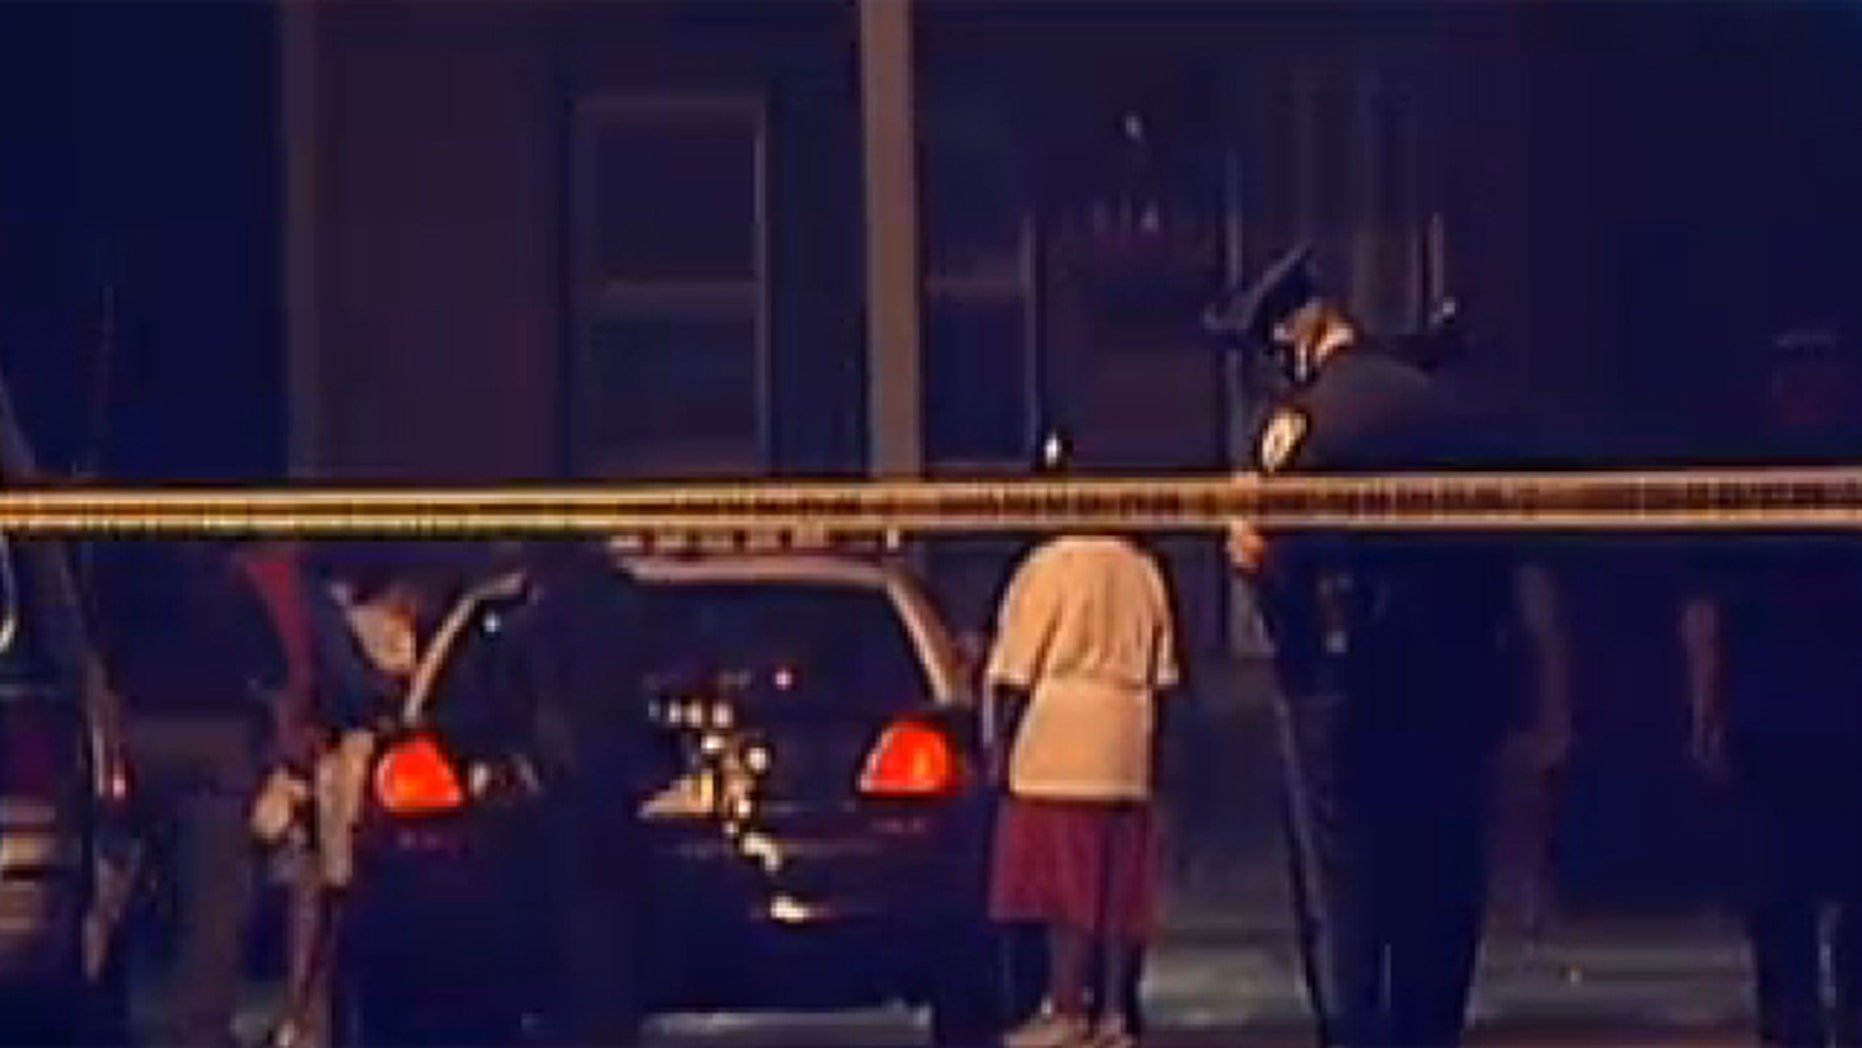 Sept. 1, 2012: The scene outside a home where siblings were stabbed while sleeping.